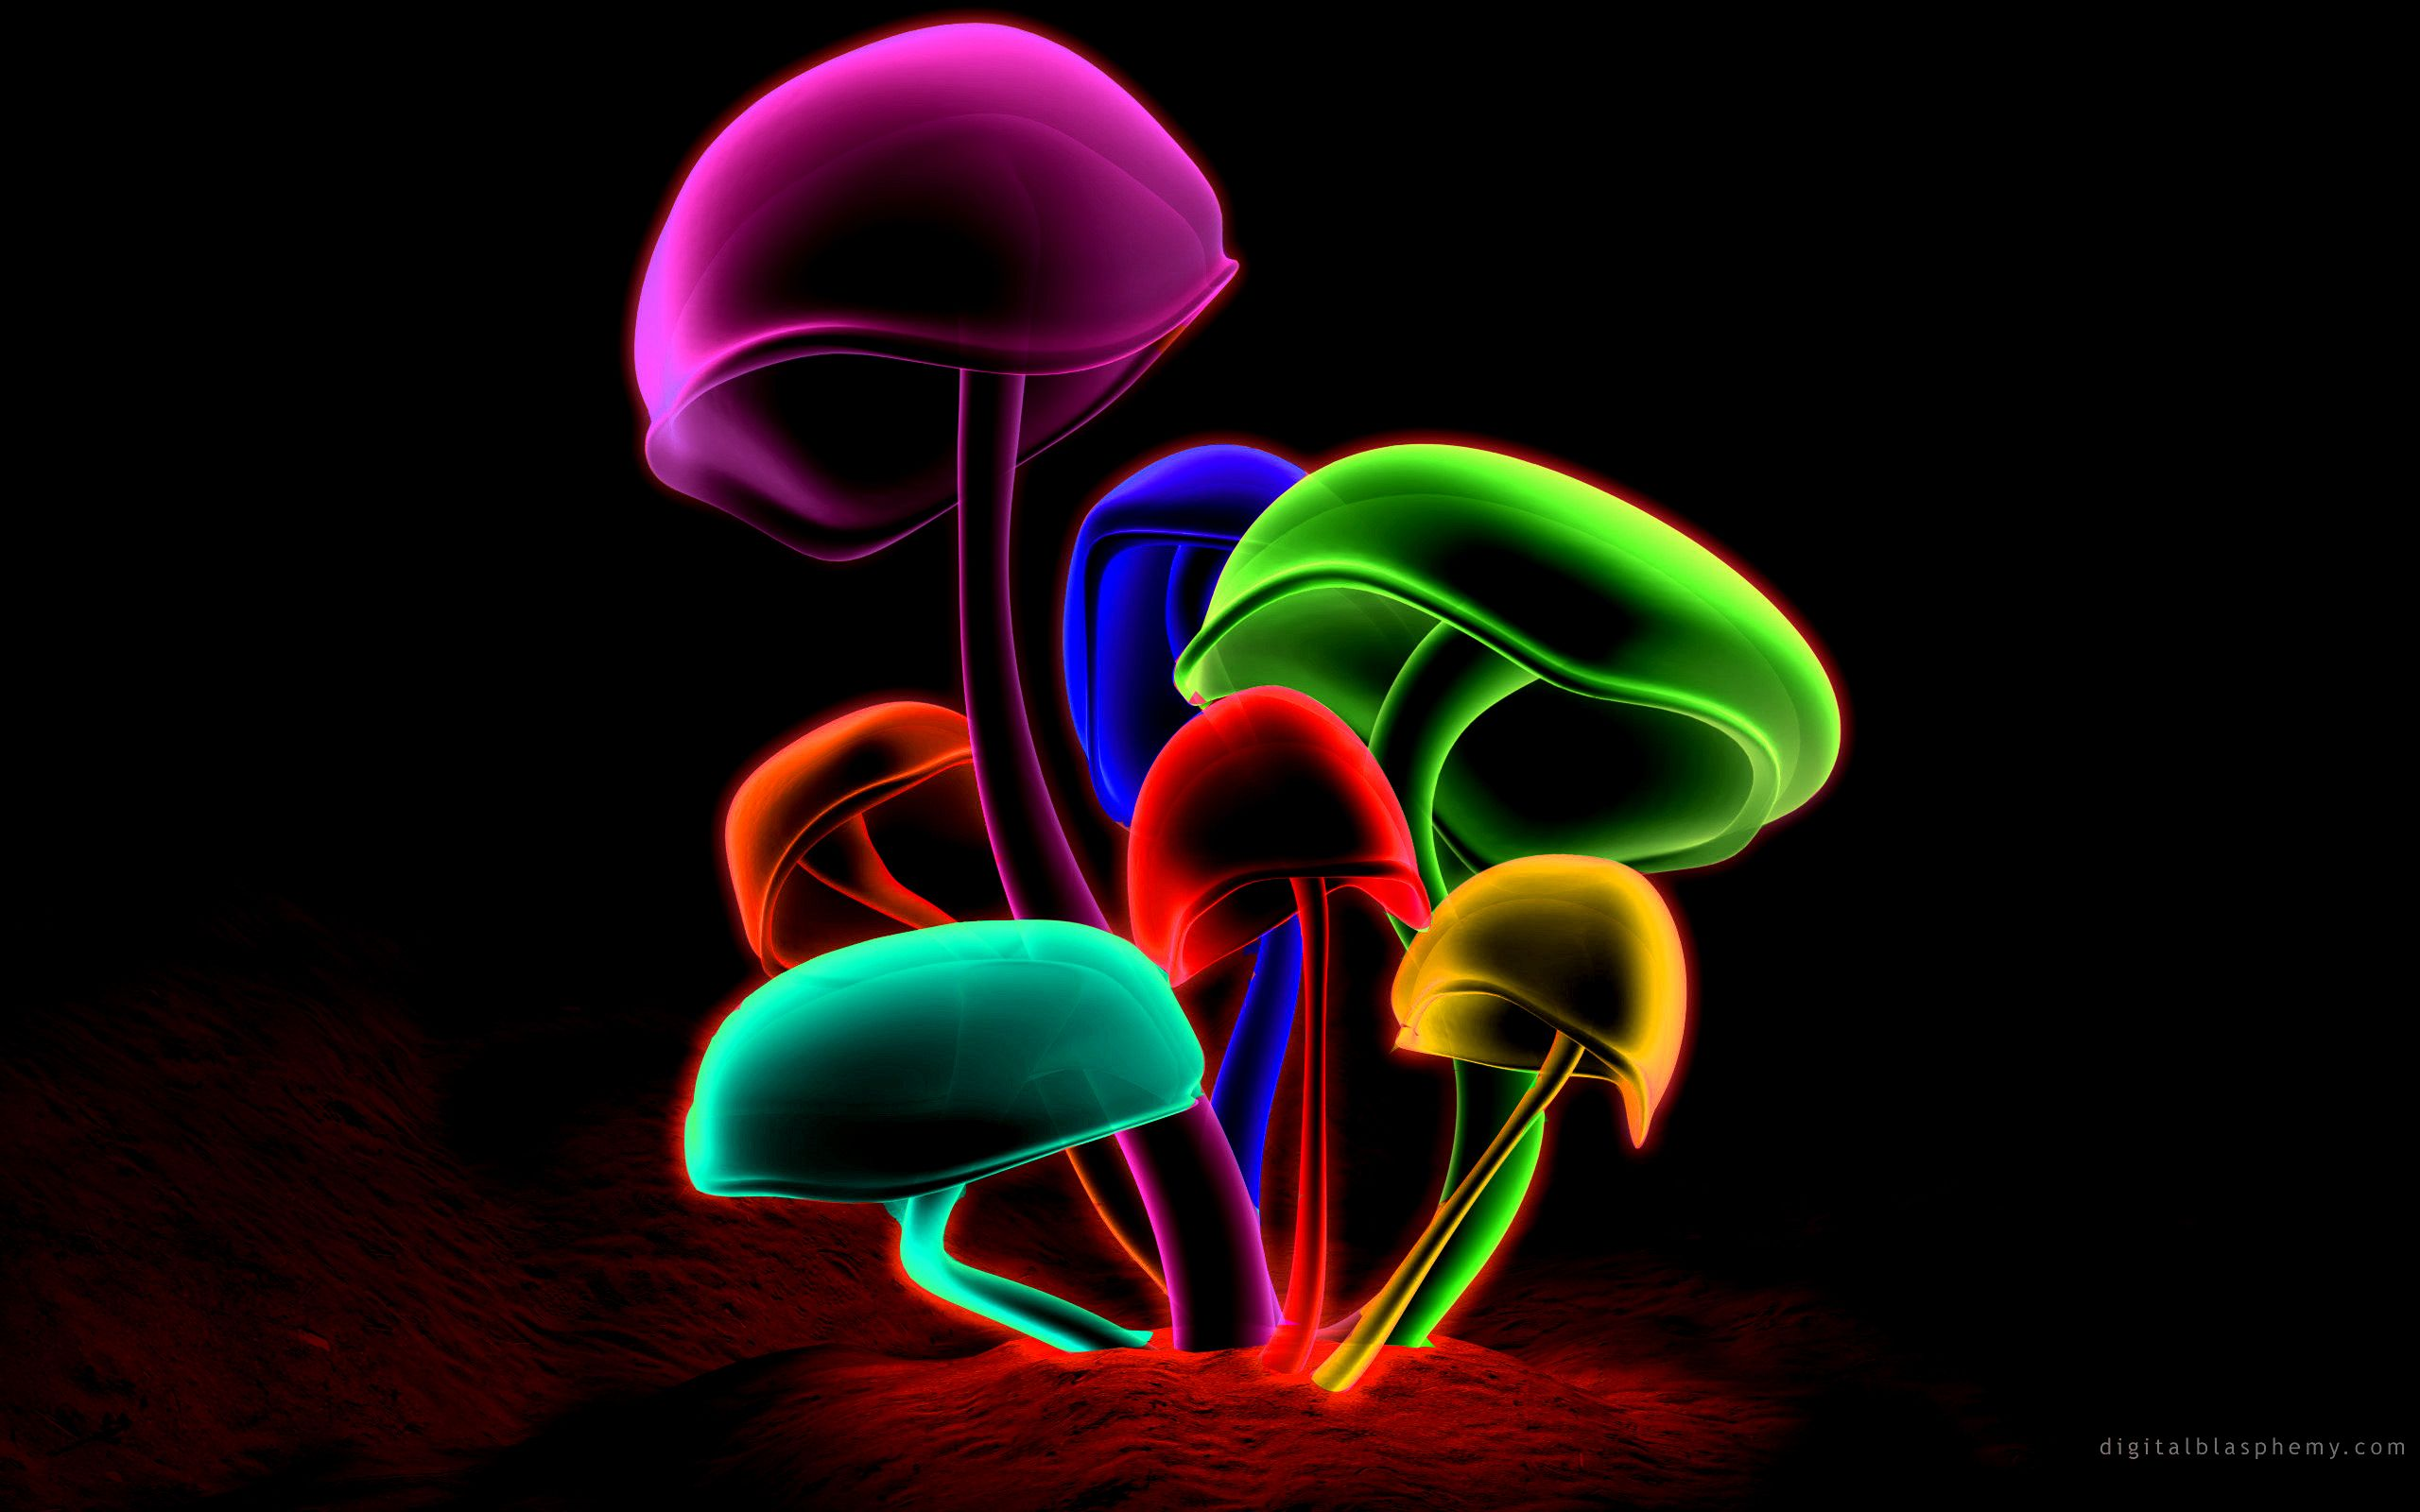 cool 3d wallpaper mushrooms wallpapers desktop. Black Bedroom Furniture Sets. Home Design Ideas